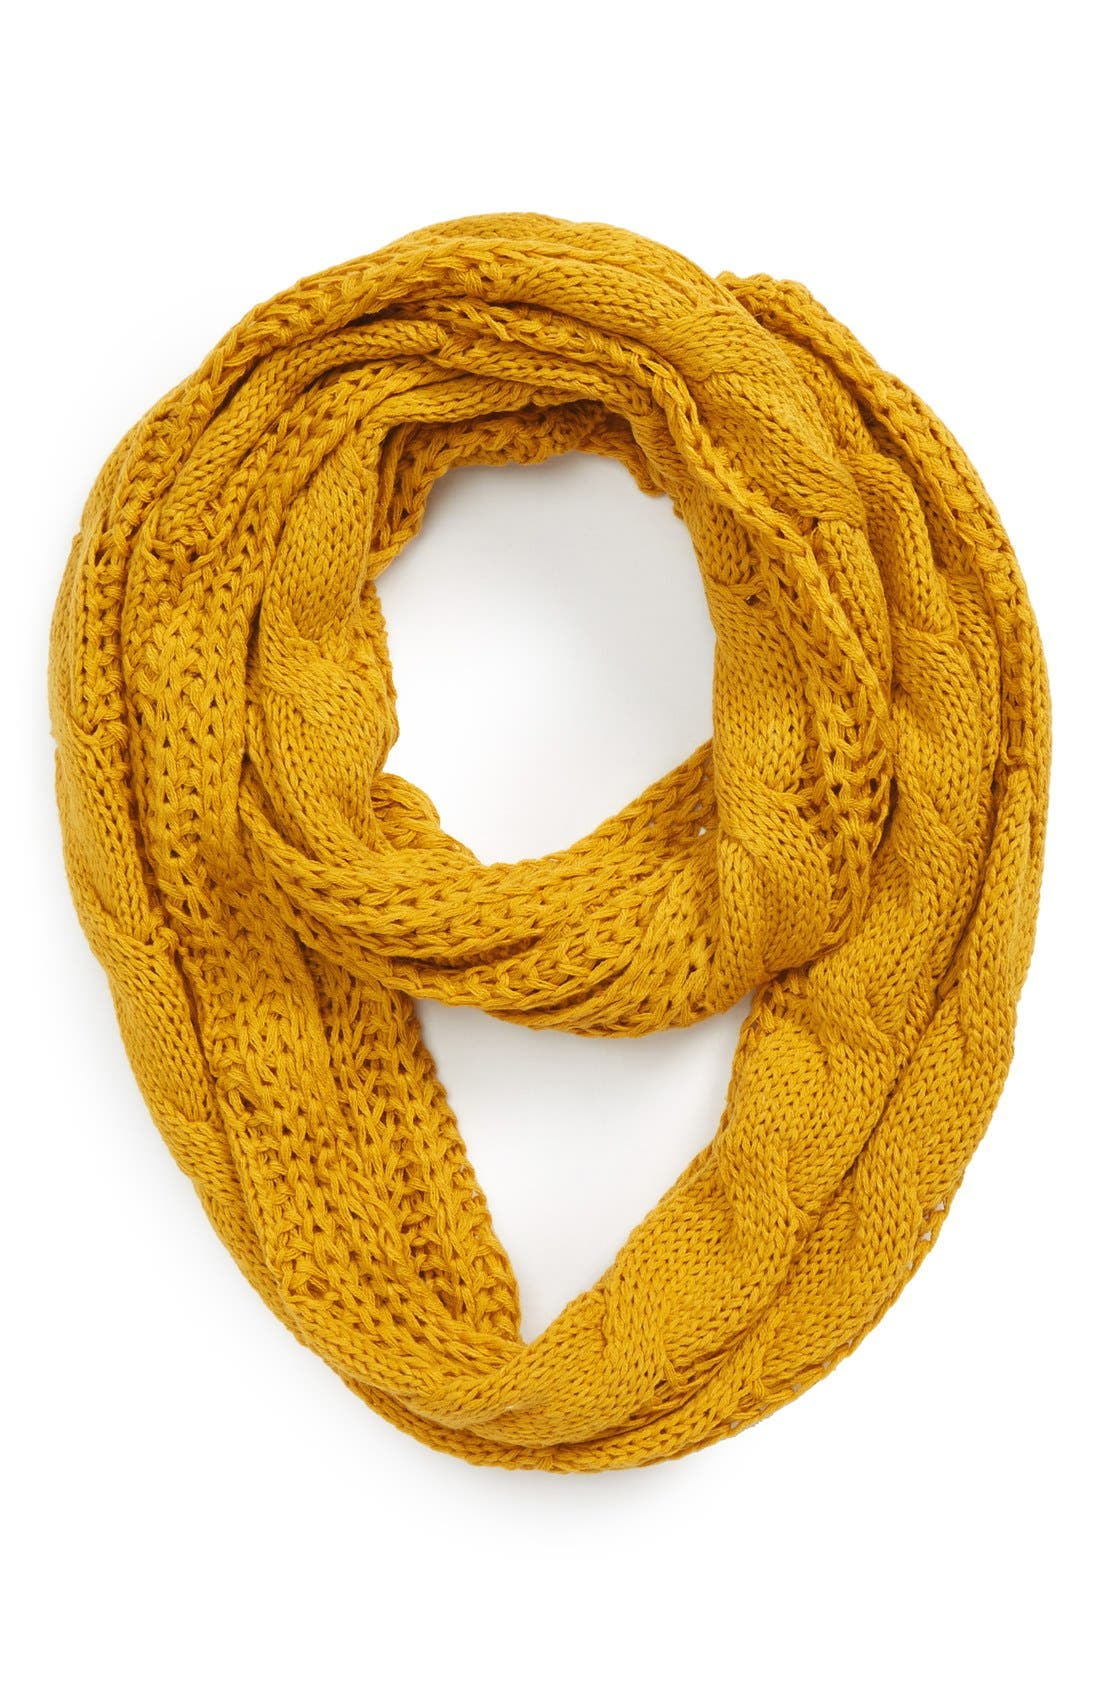 Alternate Image 1 Selected - BP. 'Heritage' Cable Knit Infinity Scarf